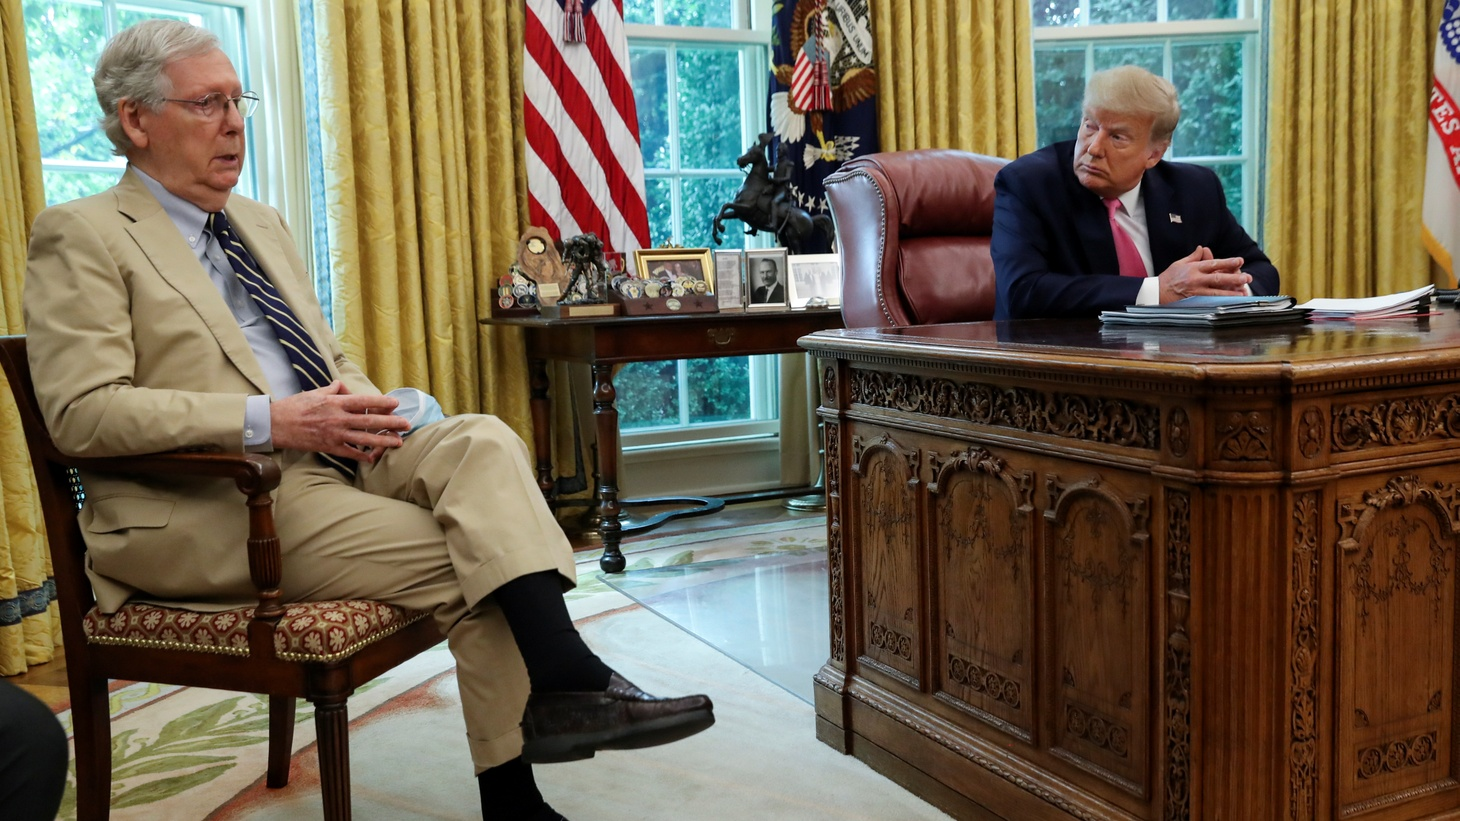 U.S. President Donald Trump listens to Senate Majority Leader Mitch McConnell (R-KY) speak about legislation for additional coronavirus aid in the Oval Office at the White House in Washington, U.S., July 20, 2020.